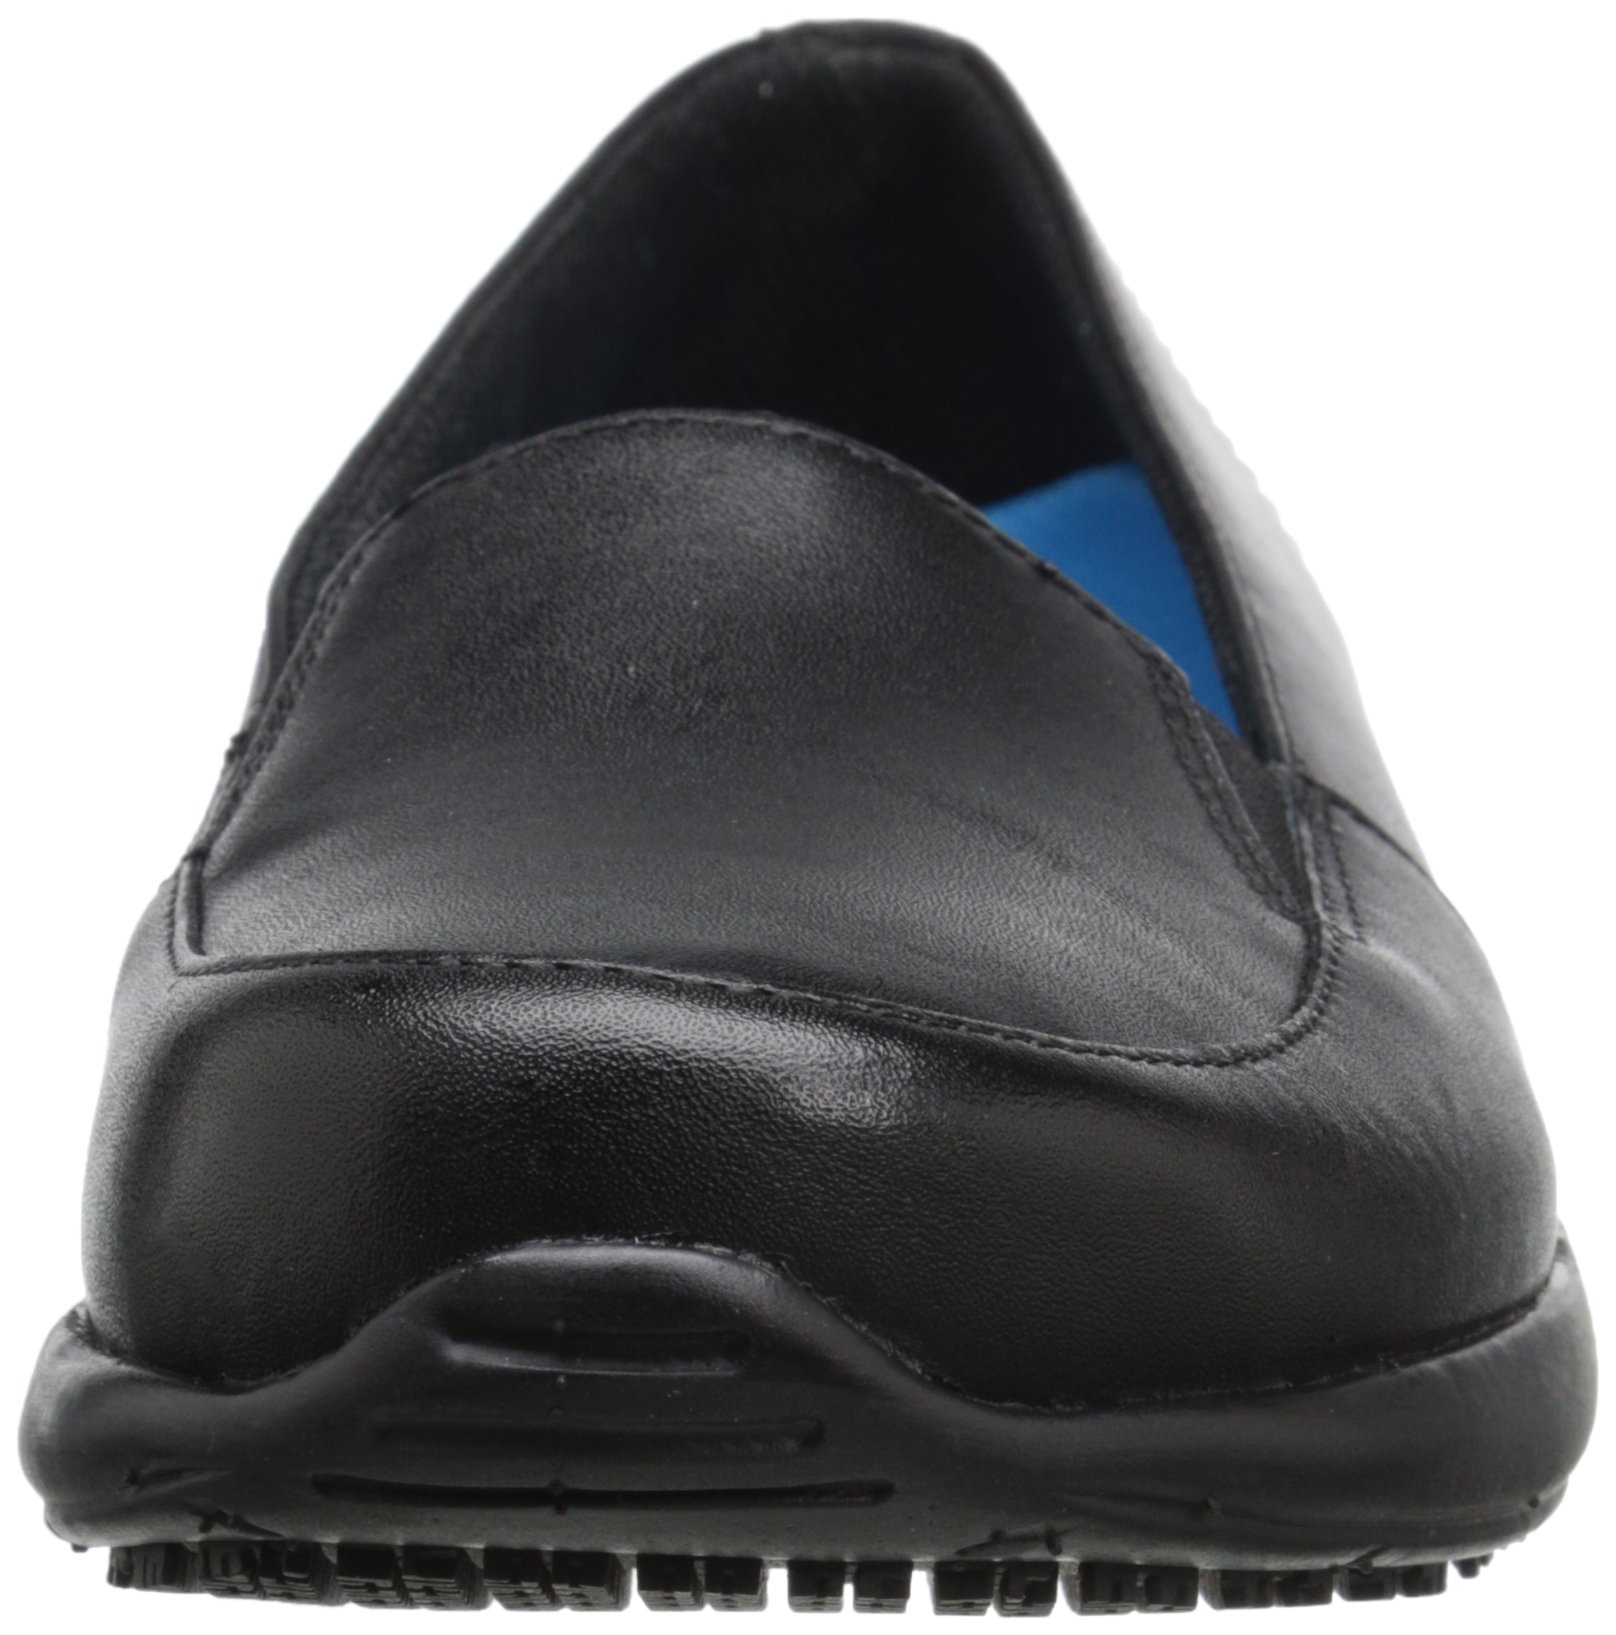 Dr. Scholl's Women's Lauri Slip On, Black, 8 M US by Dr. Scholl's Shoes (Image #4)